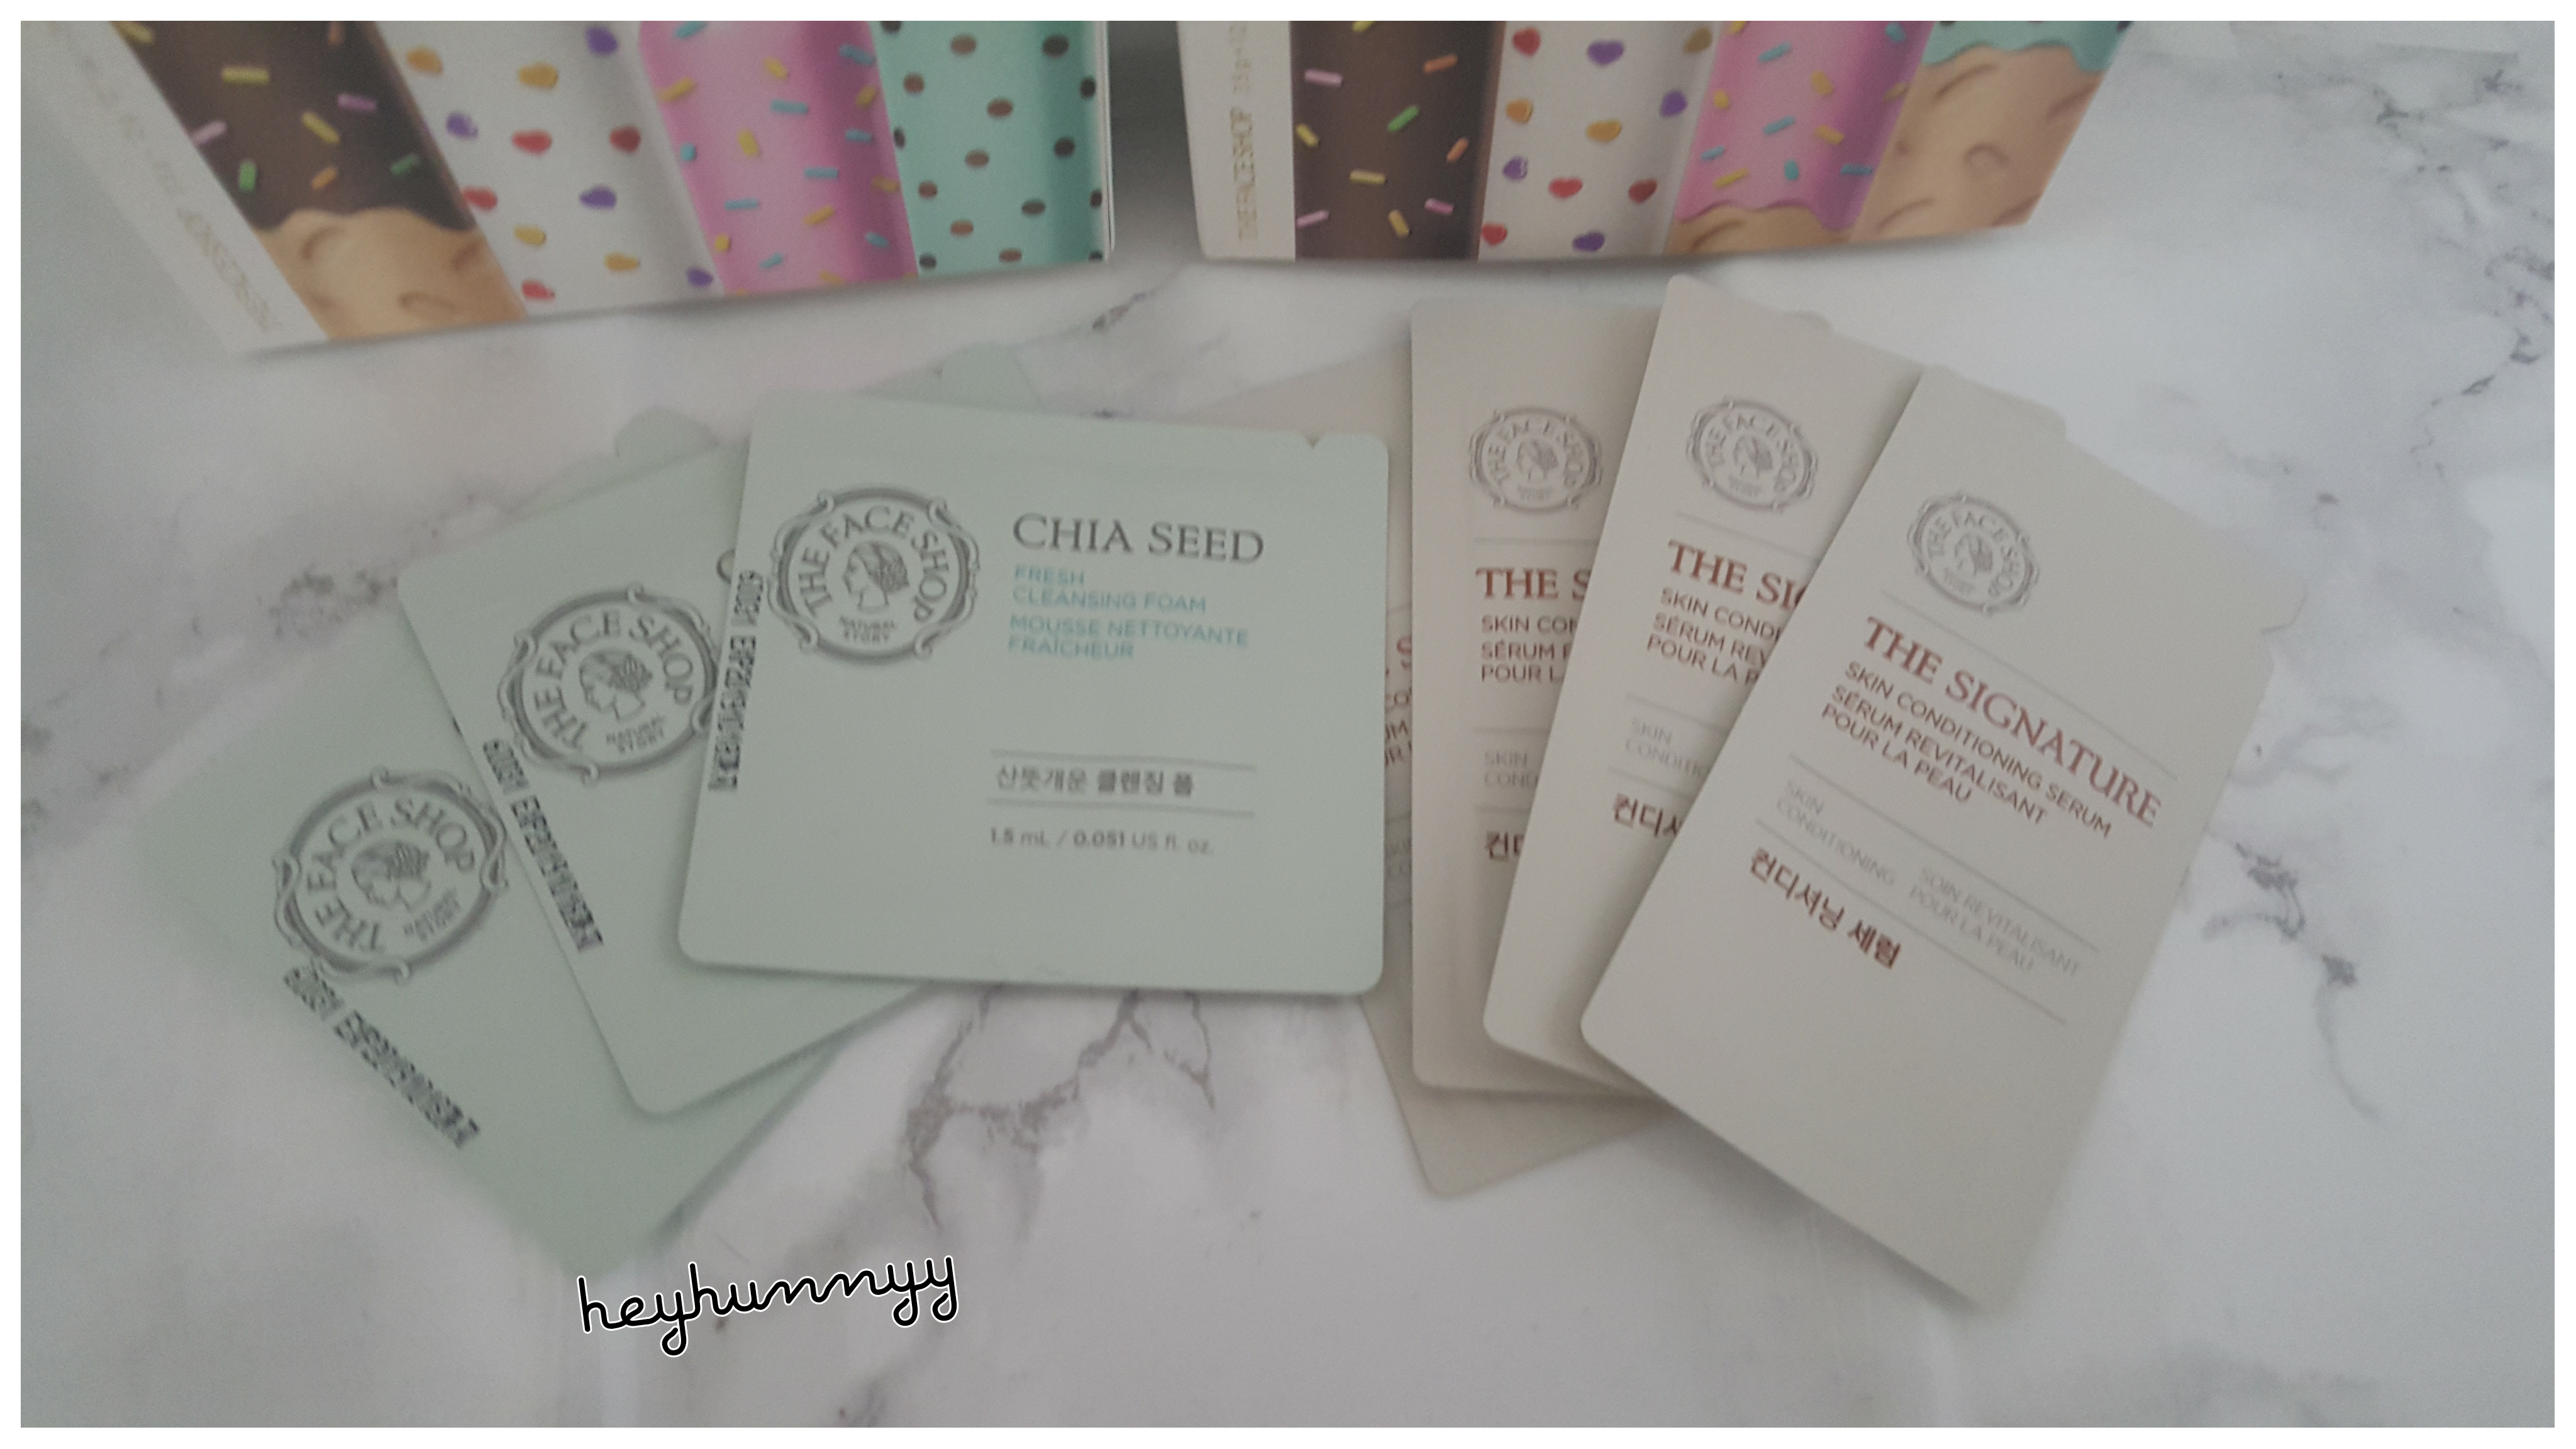 ::REVIEW:: The Face Shop - The Signature Skin Conditioning Serum!